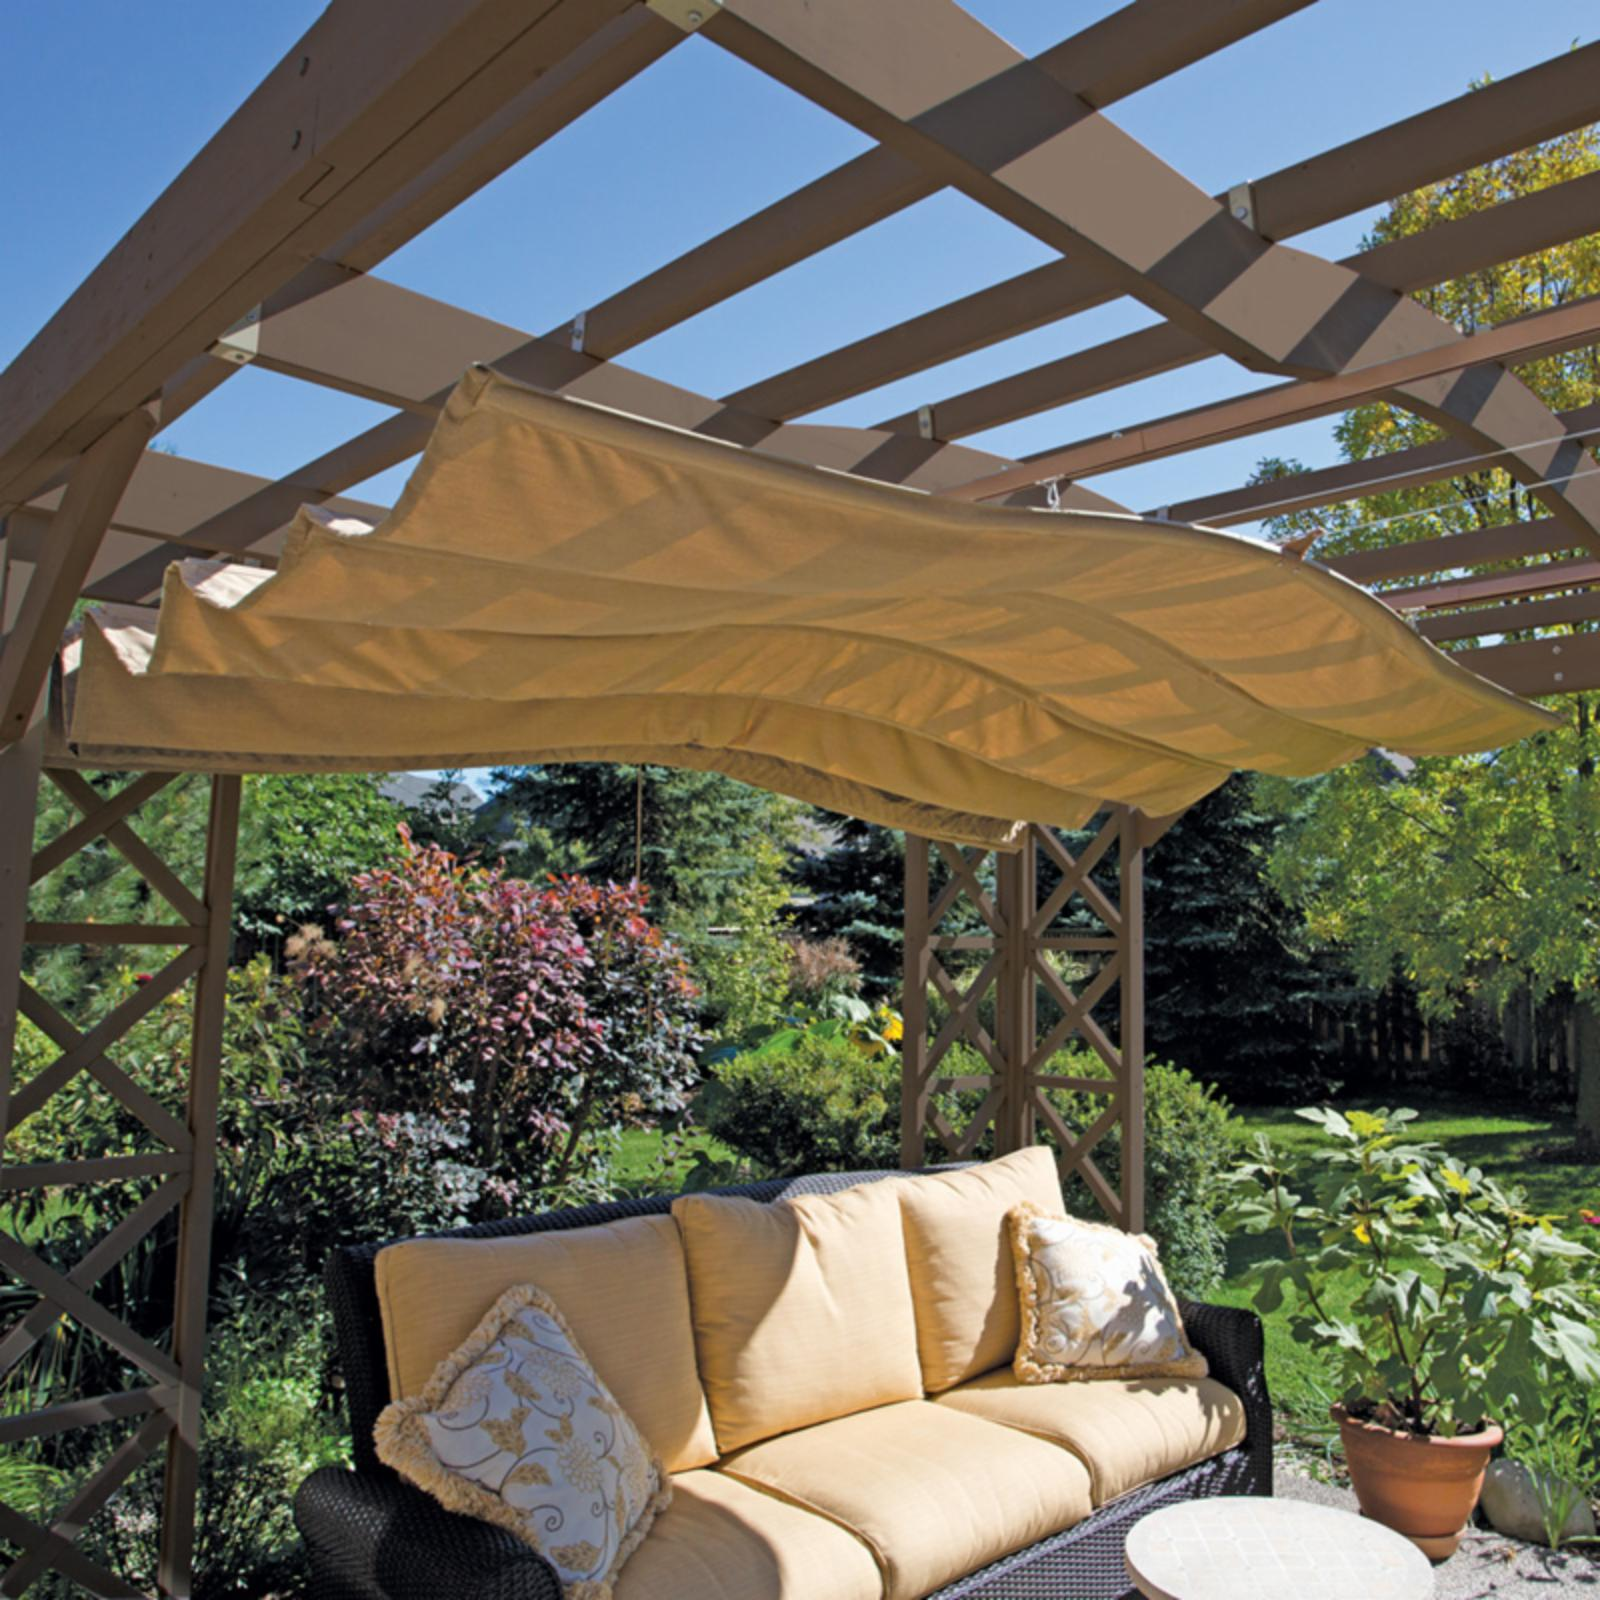 Yardistry Retractable Sunshade 12 x 12 ft. - Beige - YP11689X